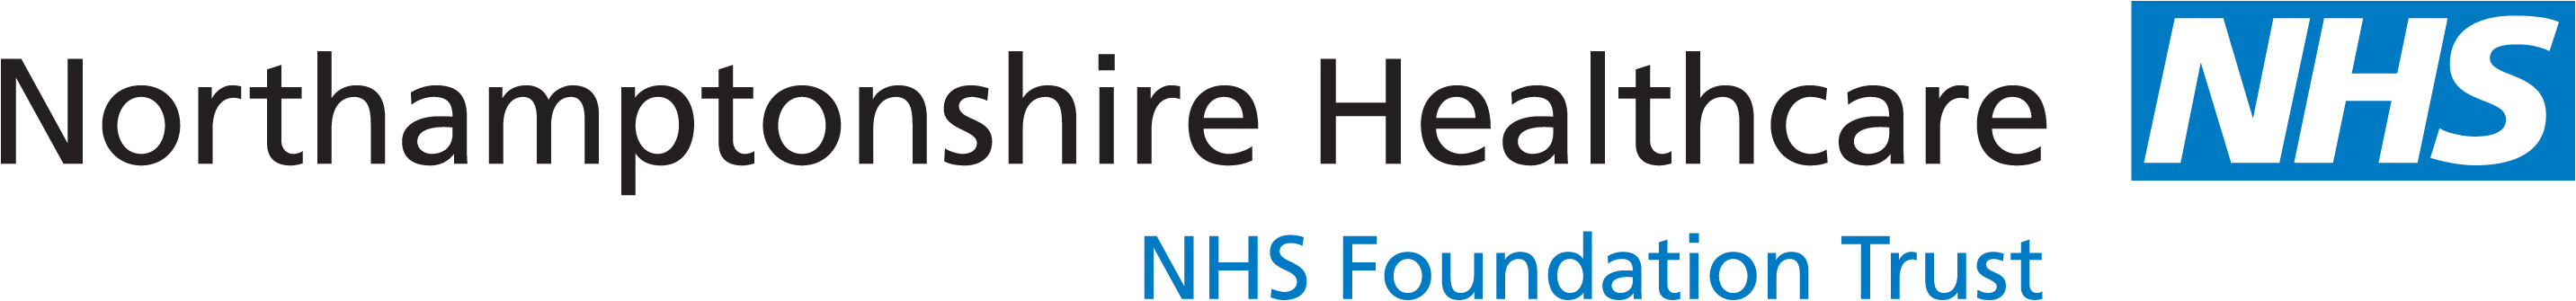 Northamptonshire Integrated Sexual Health Services